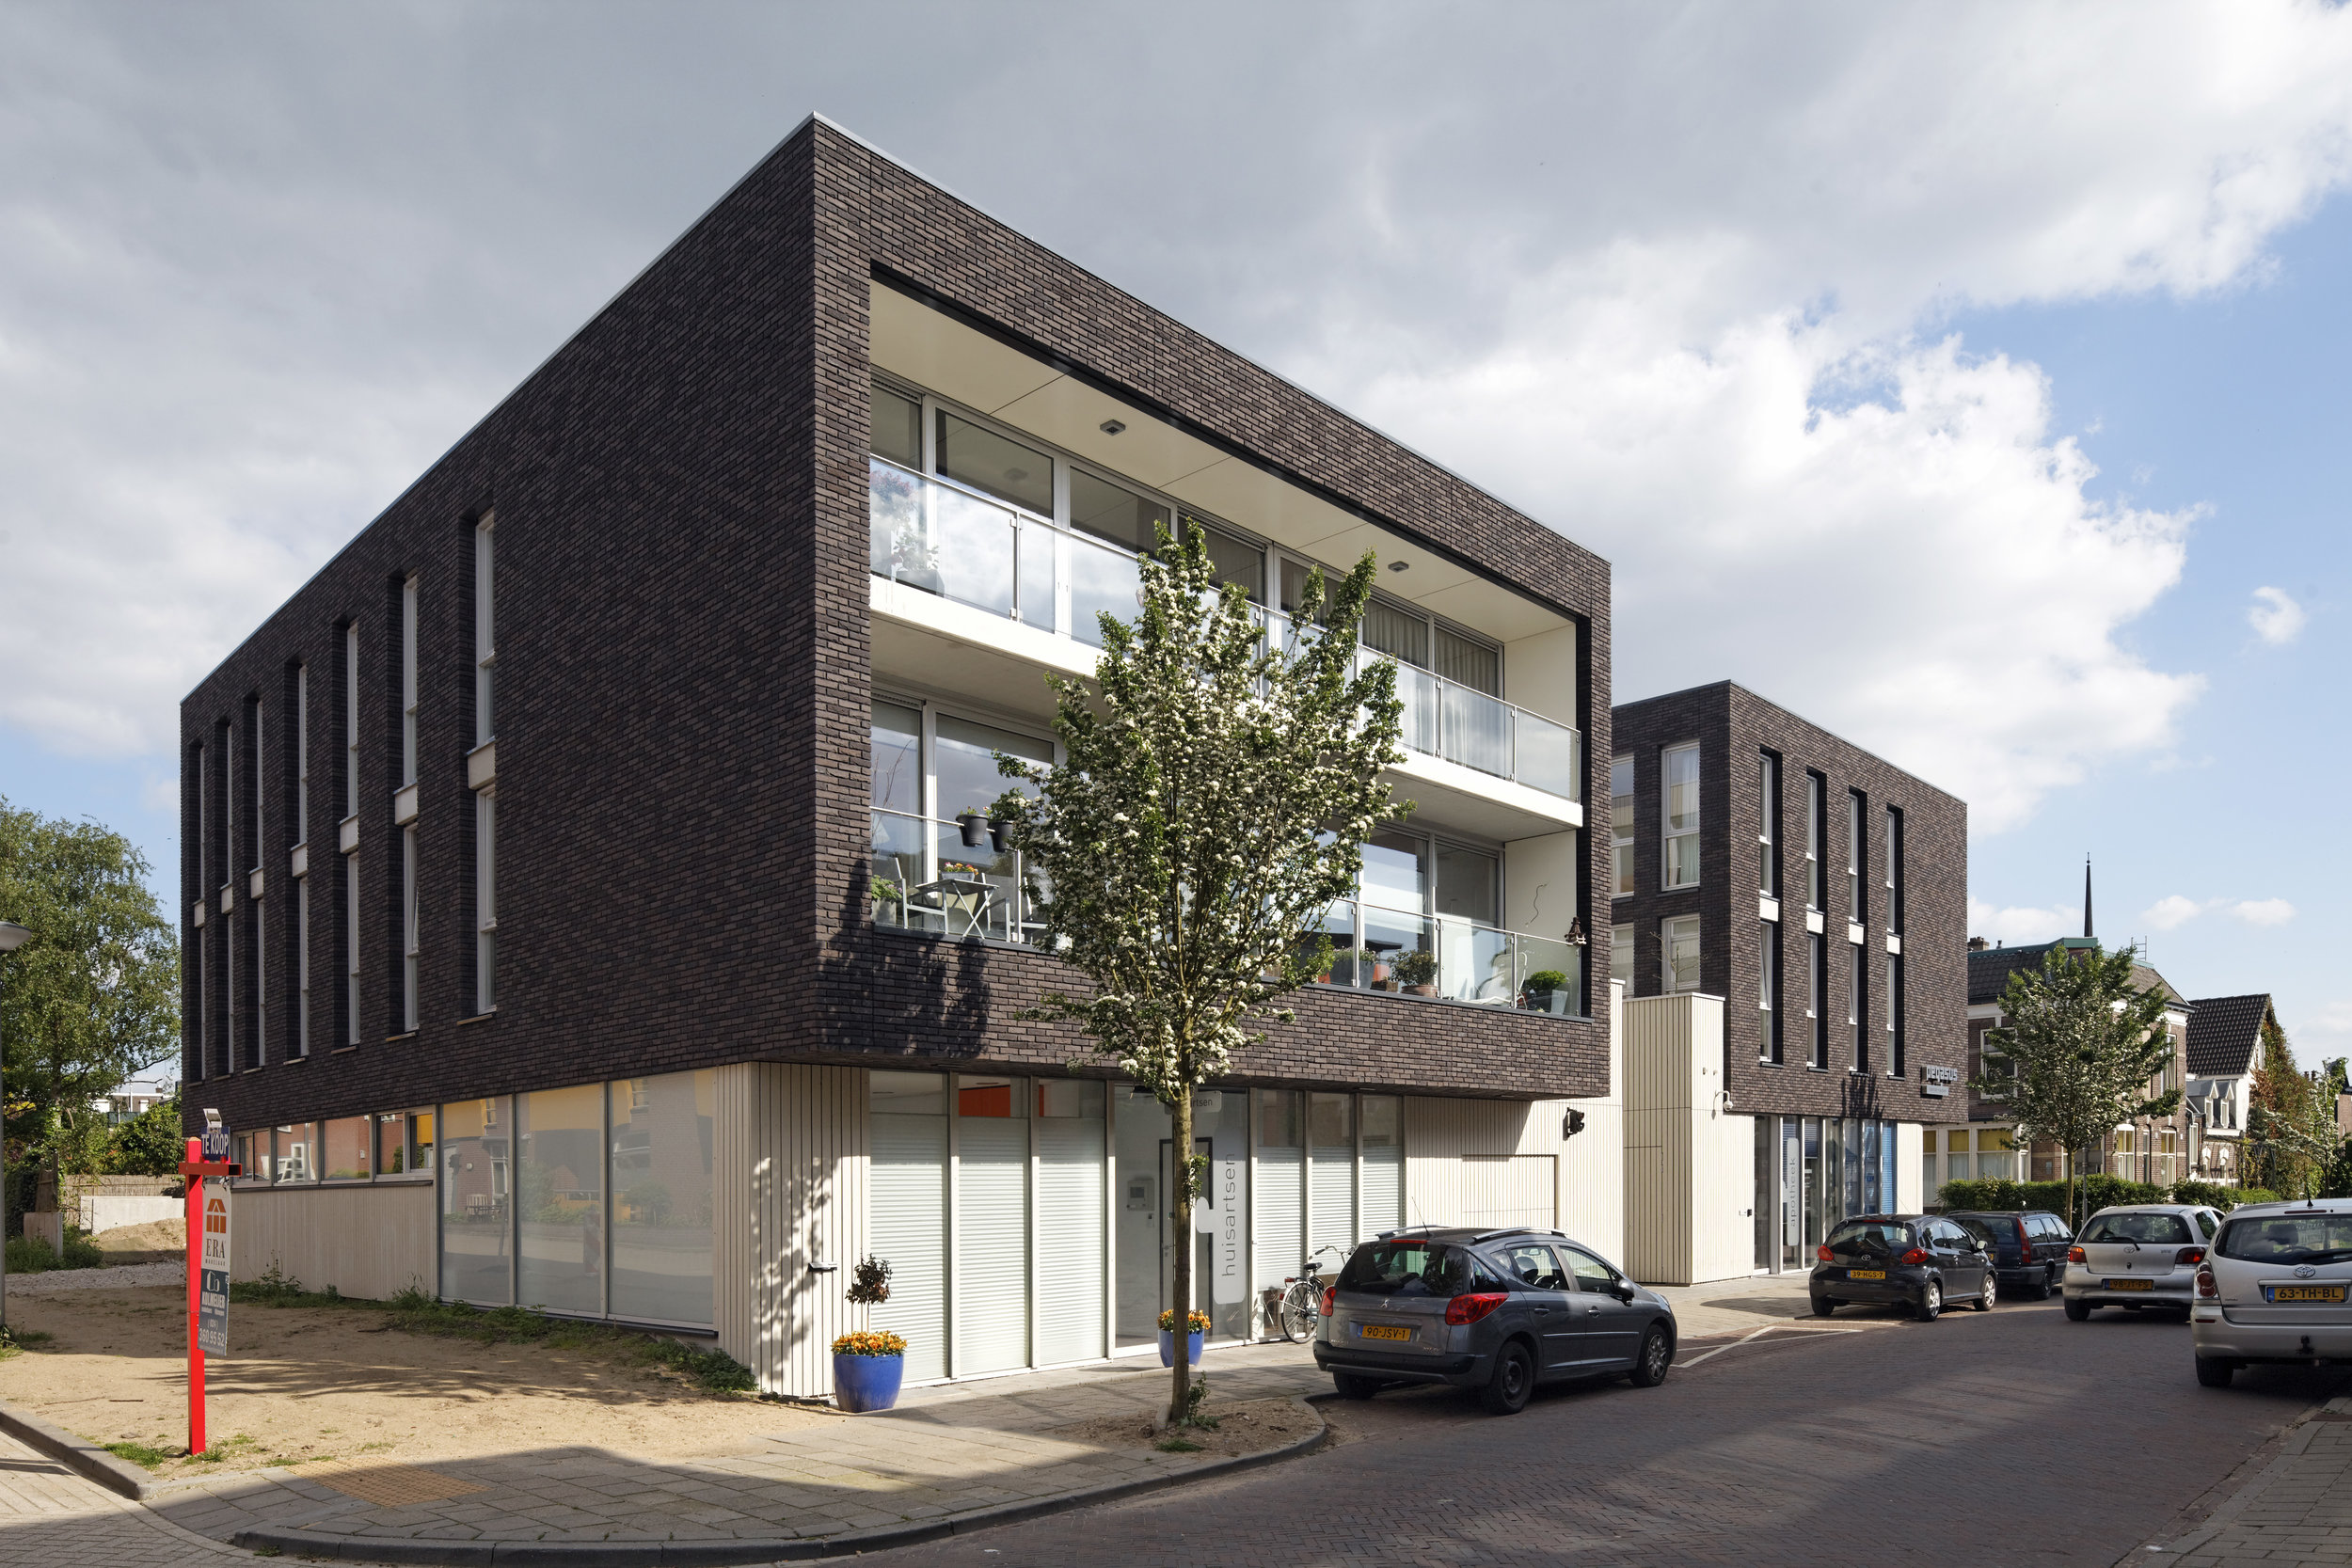 the opening in the brick volume accentuates the balconies of the apartments